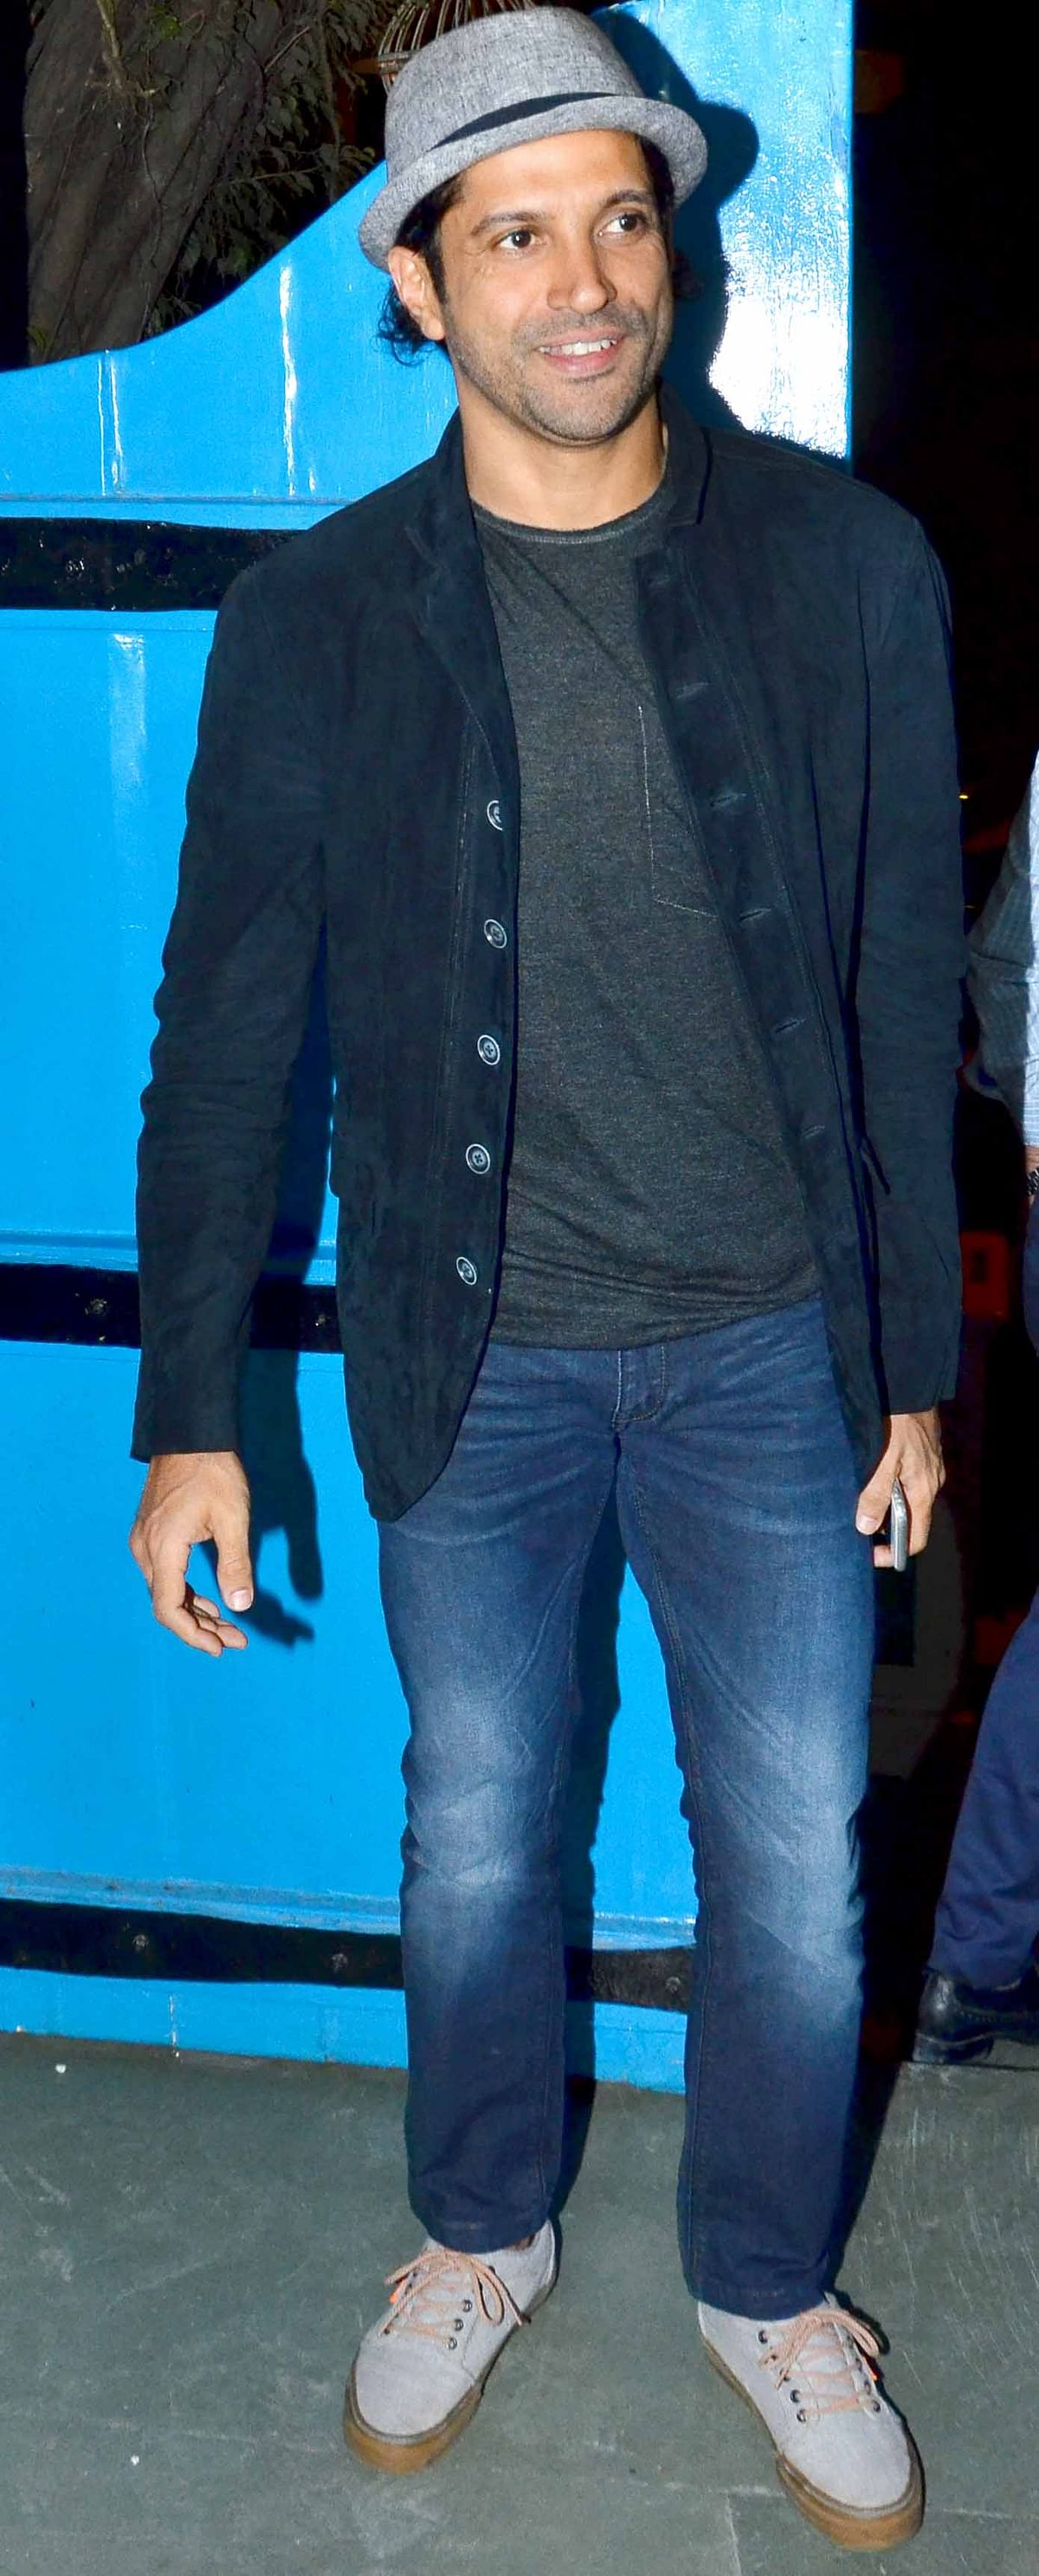 Farhan Akhtar drops by in style (Photo: Yogen Shah)